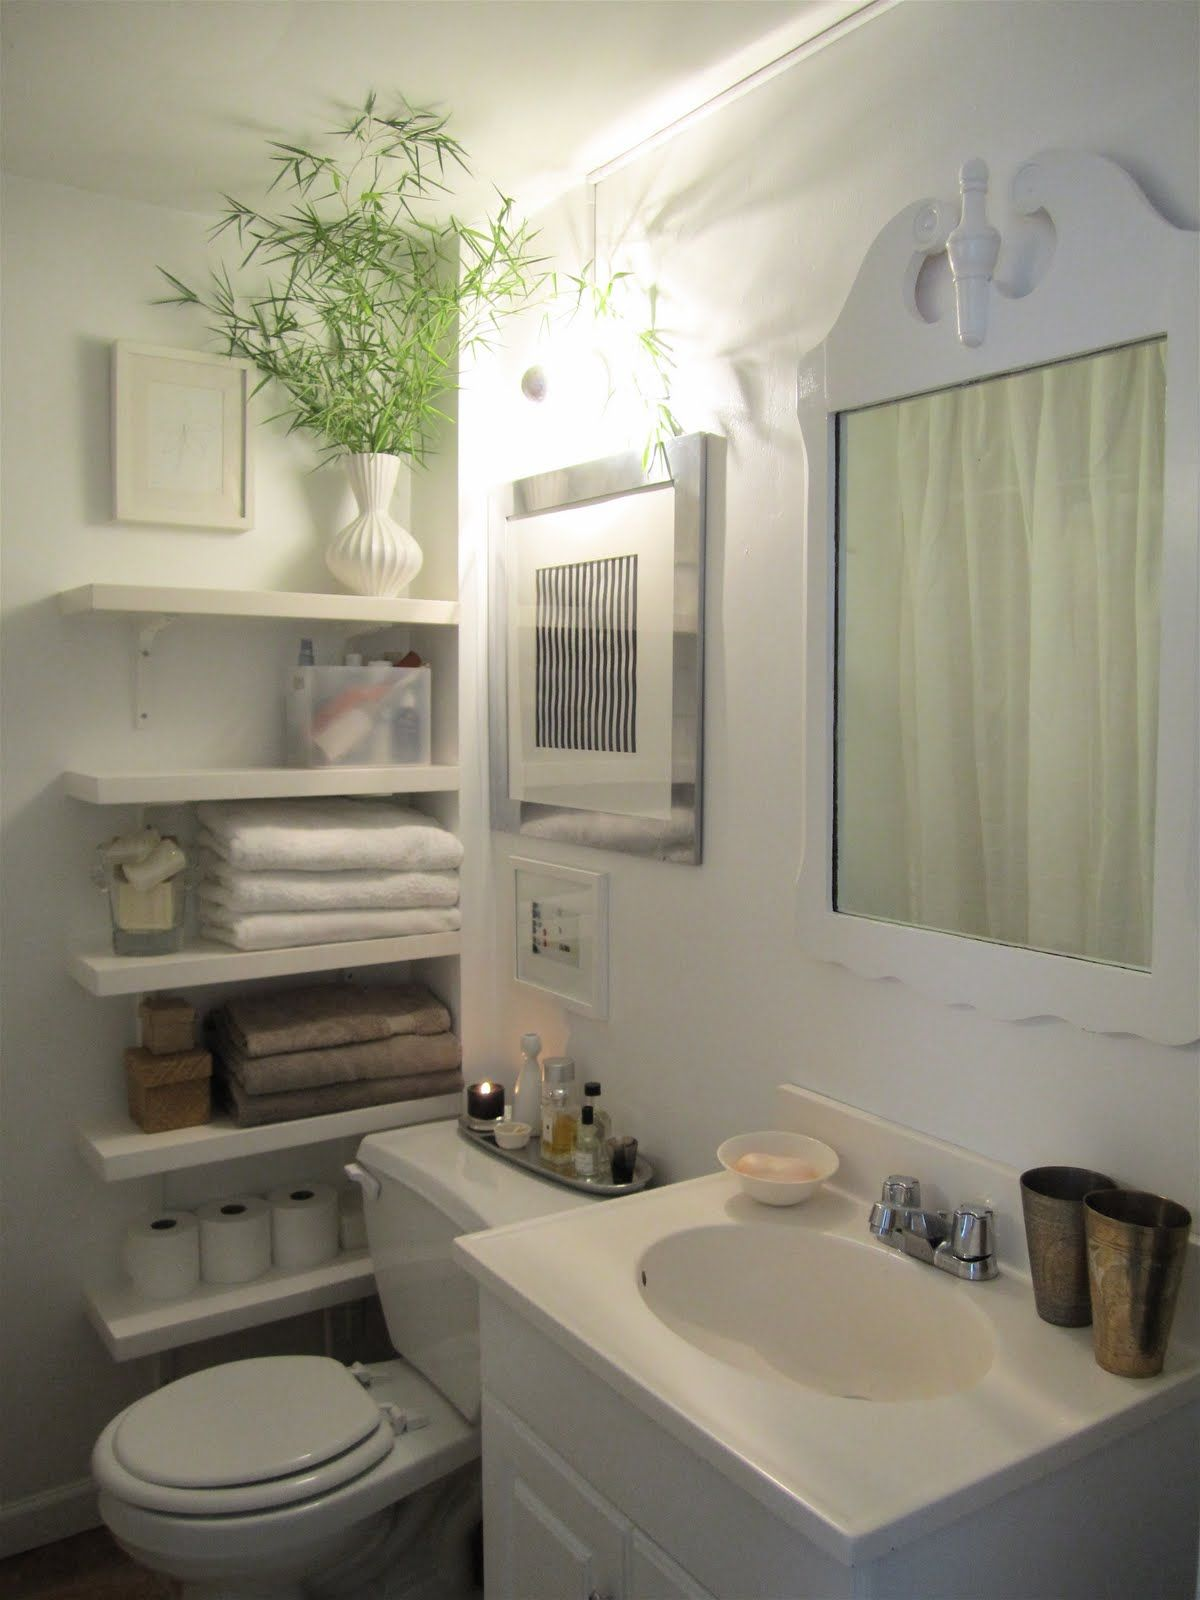 50 Small Bathroom Ideas That You Can Use To Maximize The Available Storage Space Small Bathroom Small Bathroom Decor Bathroom Decor